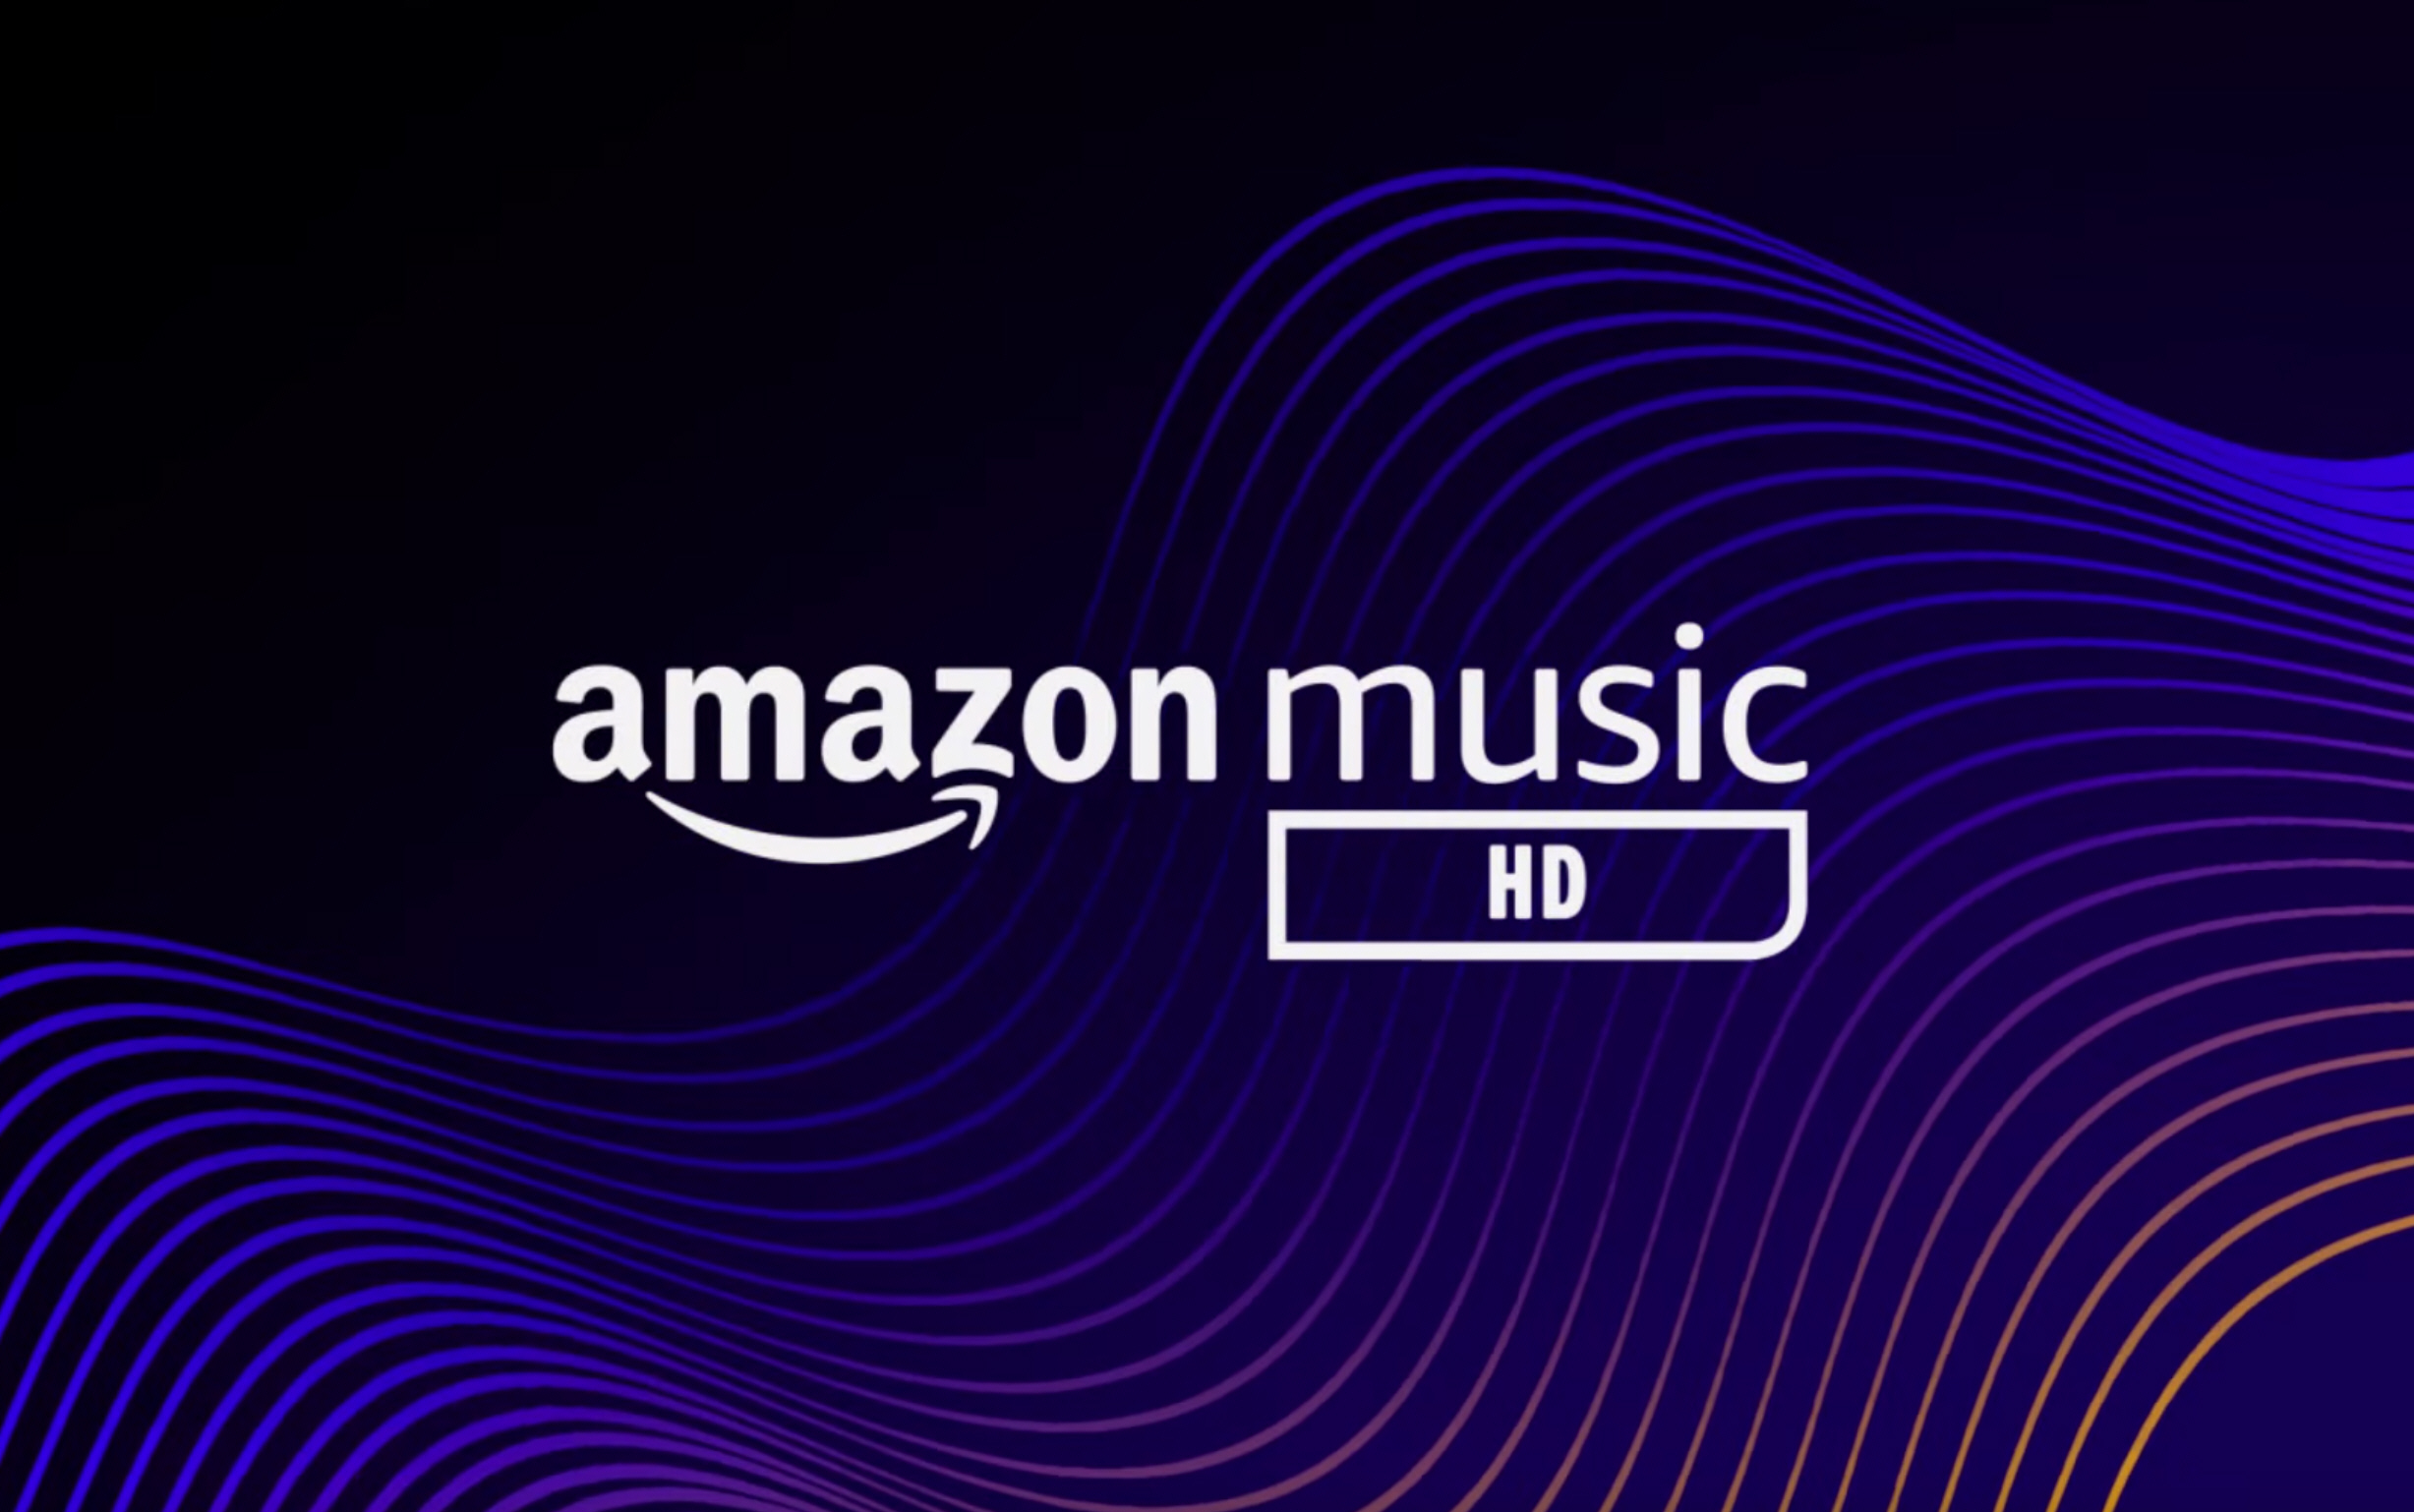 Amazon launches Amazon Music HD with millions of Ultra HD songs